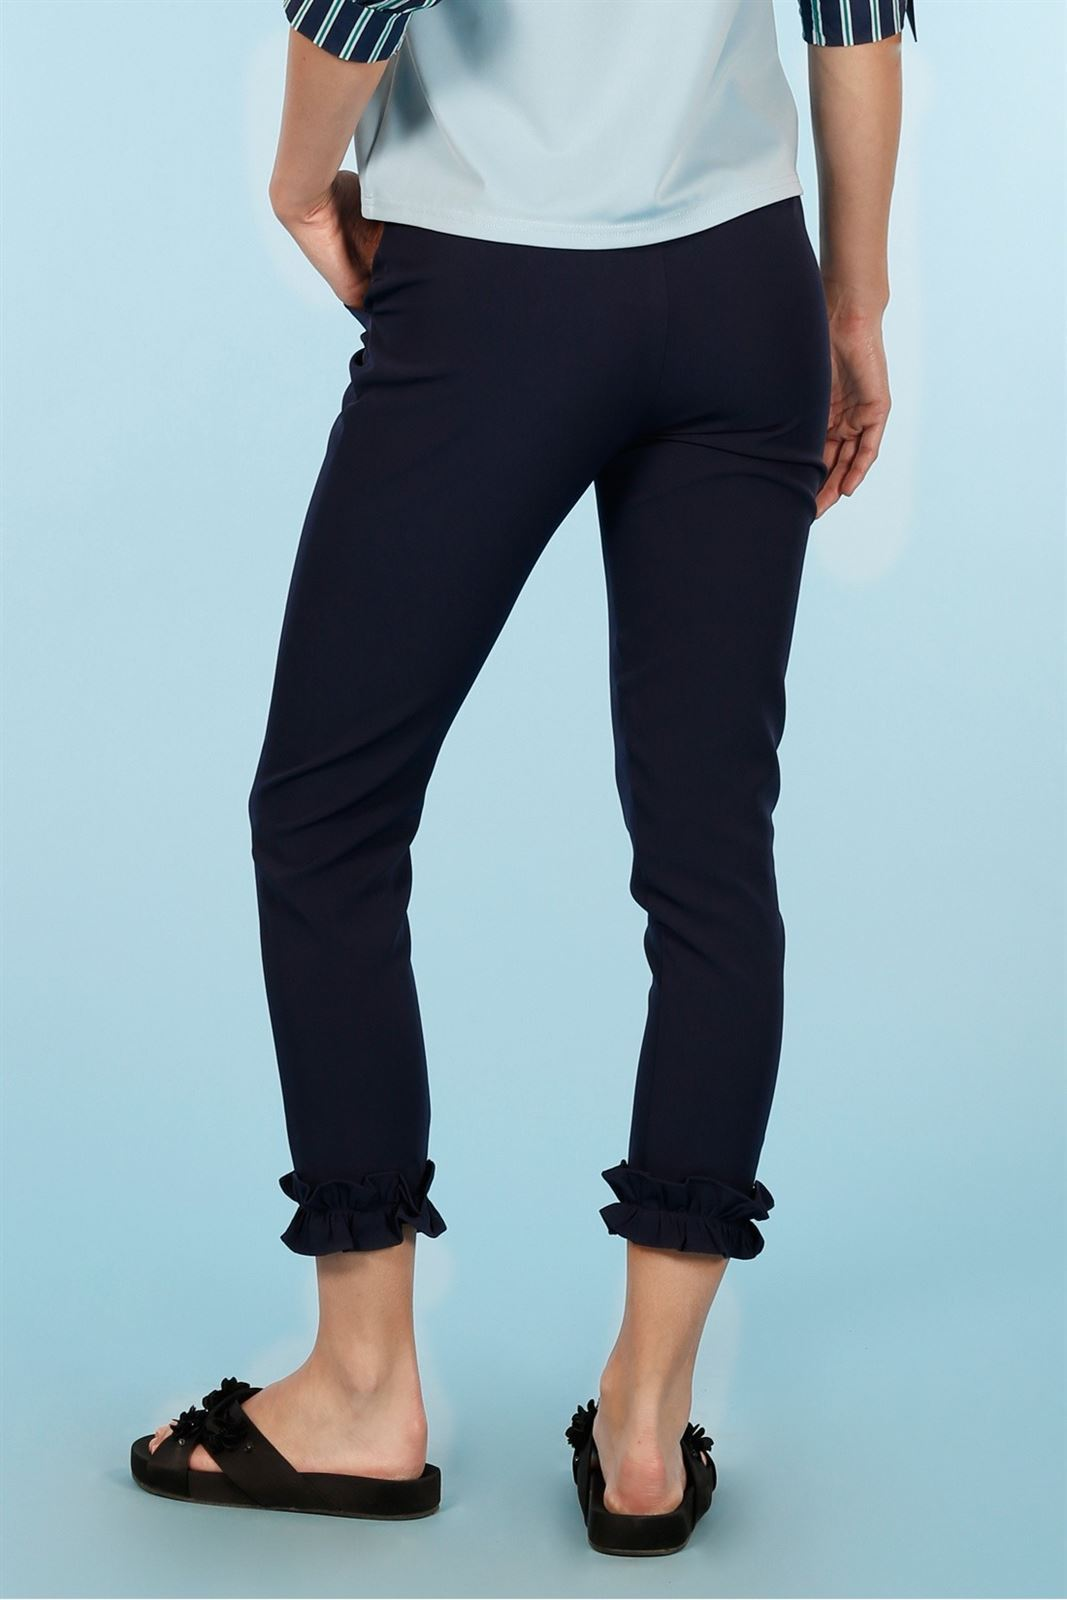 NAVY TROUSERS MINUETO - Imagen 2